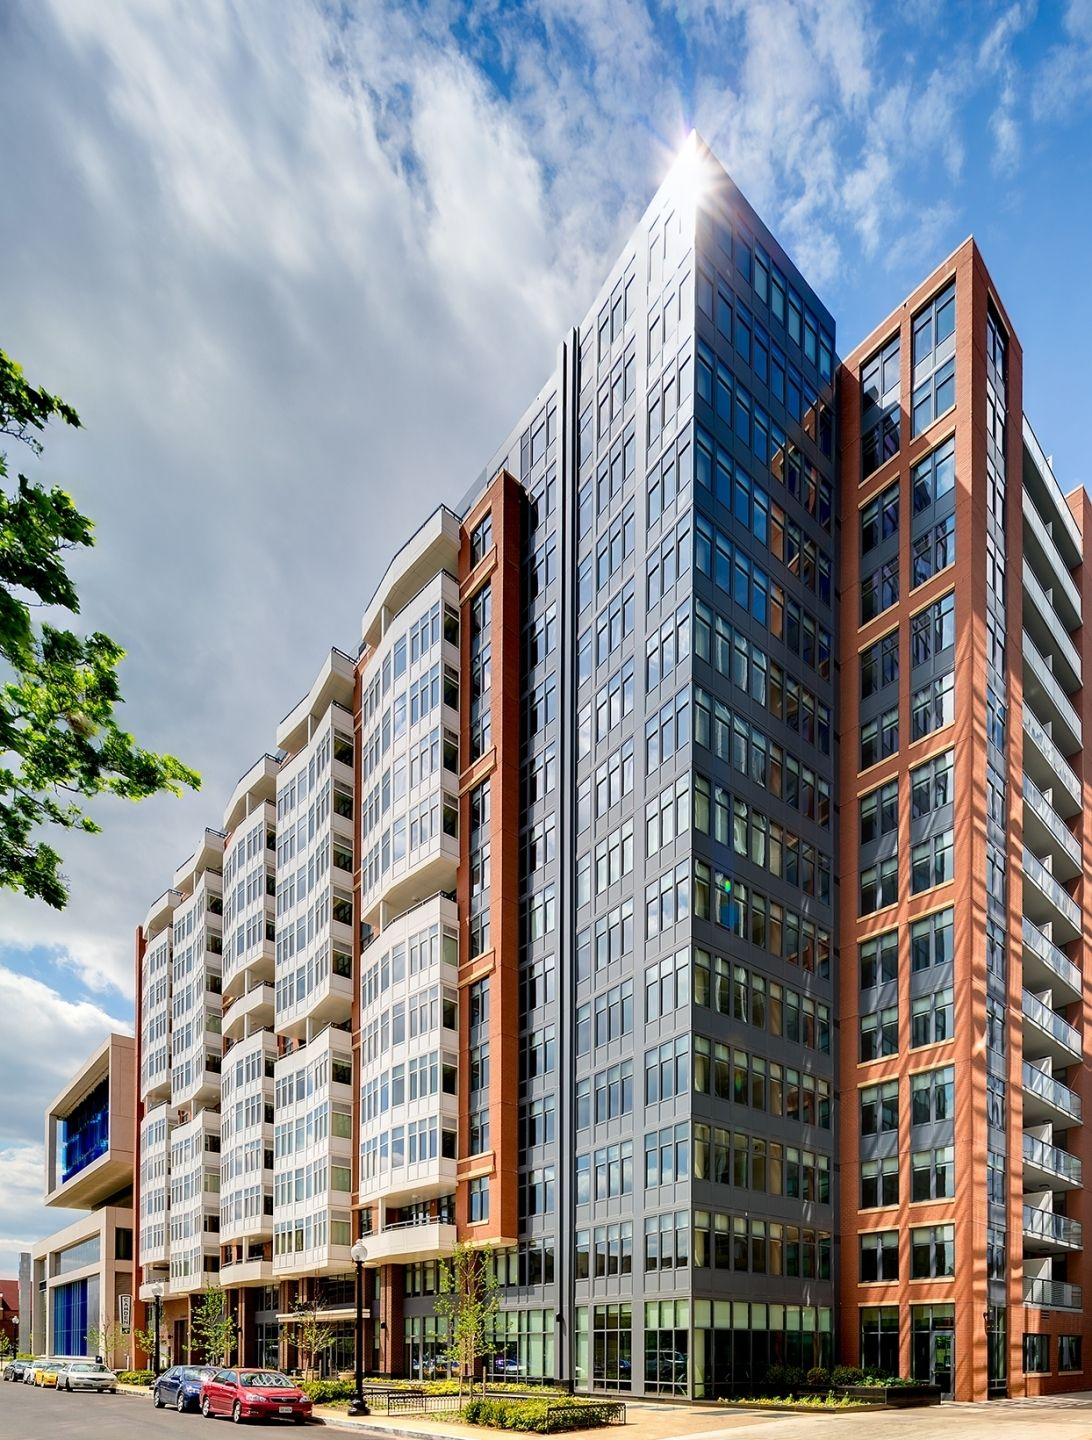 Apartments For Rent In Washington Dc Camden Noma Apartment View Dc Apartments Washington Dc Apartment